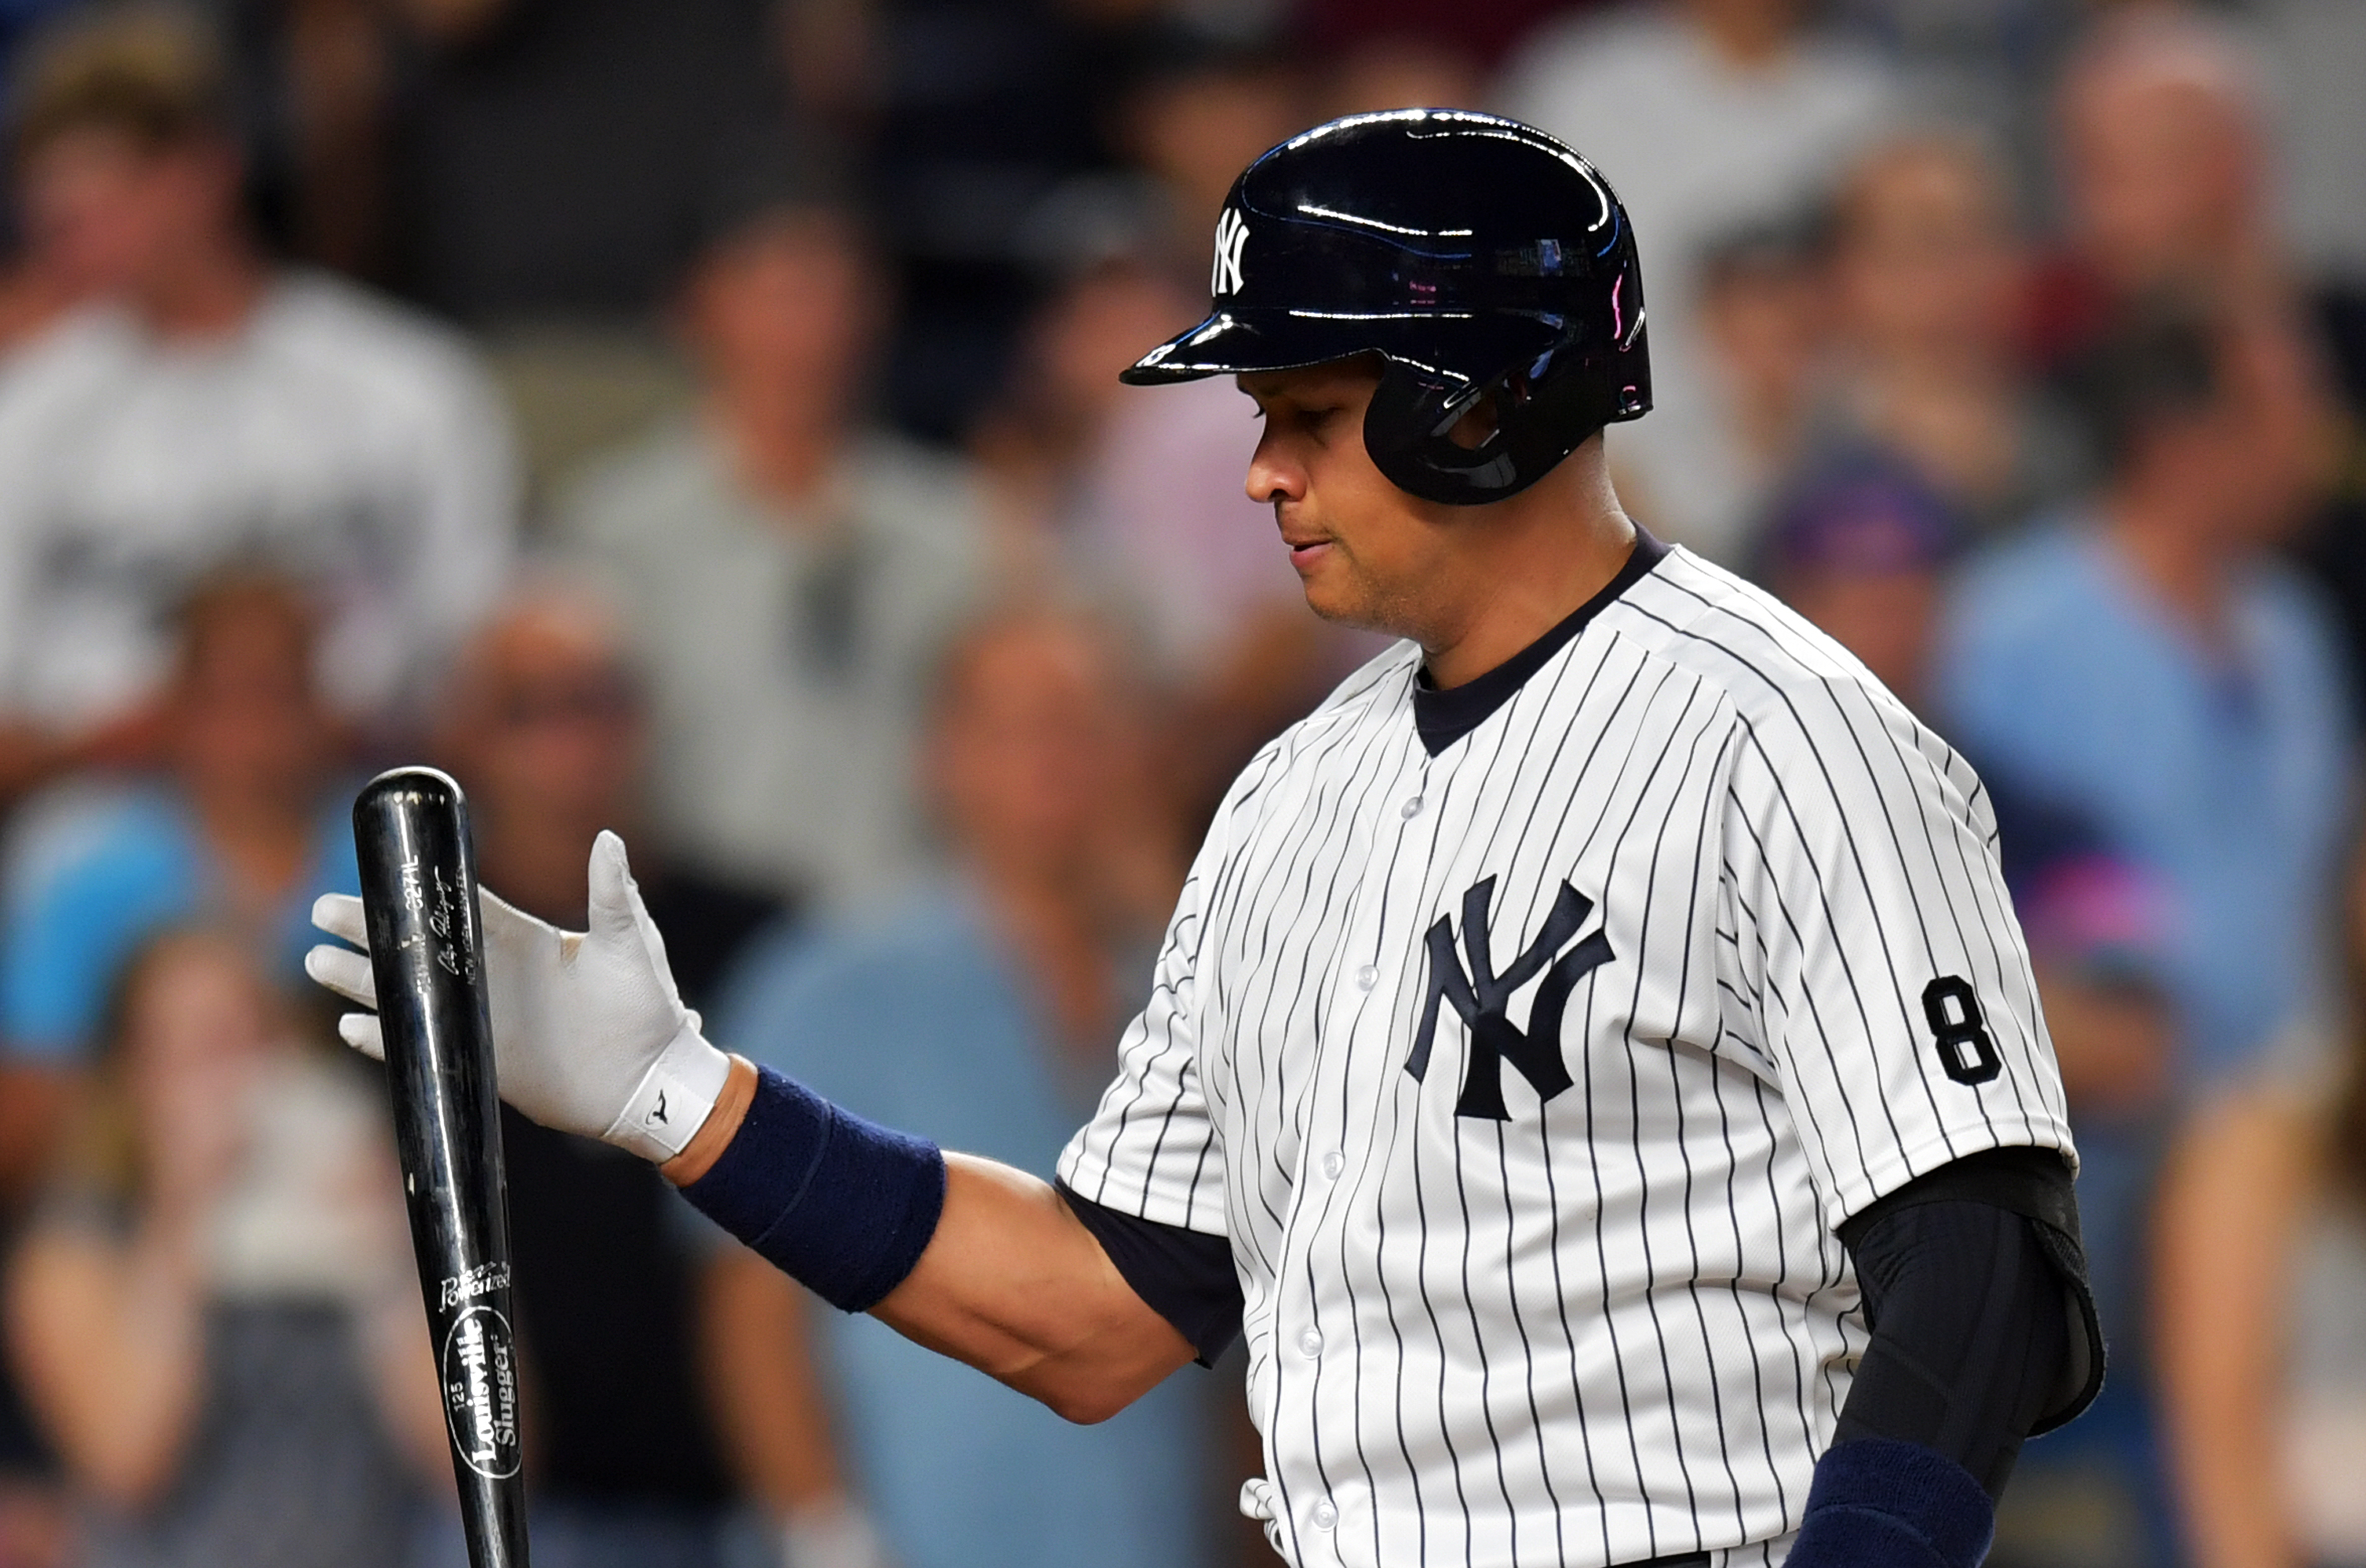 Alex Rodriguez #13 of the New York Yankees reacts after striking out in the fifth inning against the Tampa Bay Rays at Yankee Stadium on August 12, 2016 in New York City. (Photo by Drew Hallowell/Getty Images)